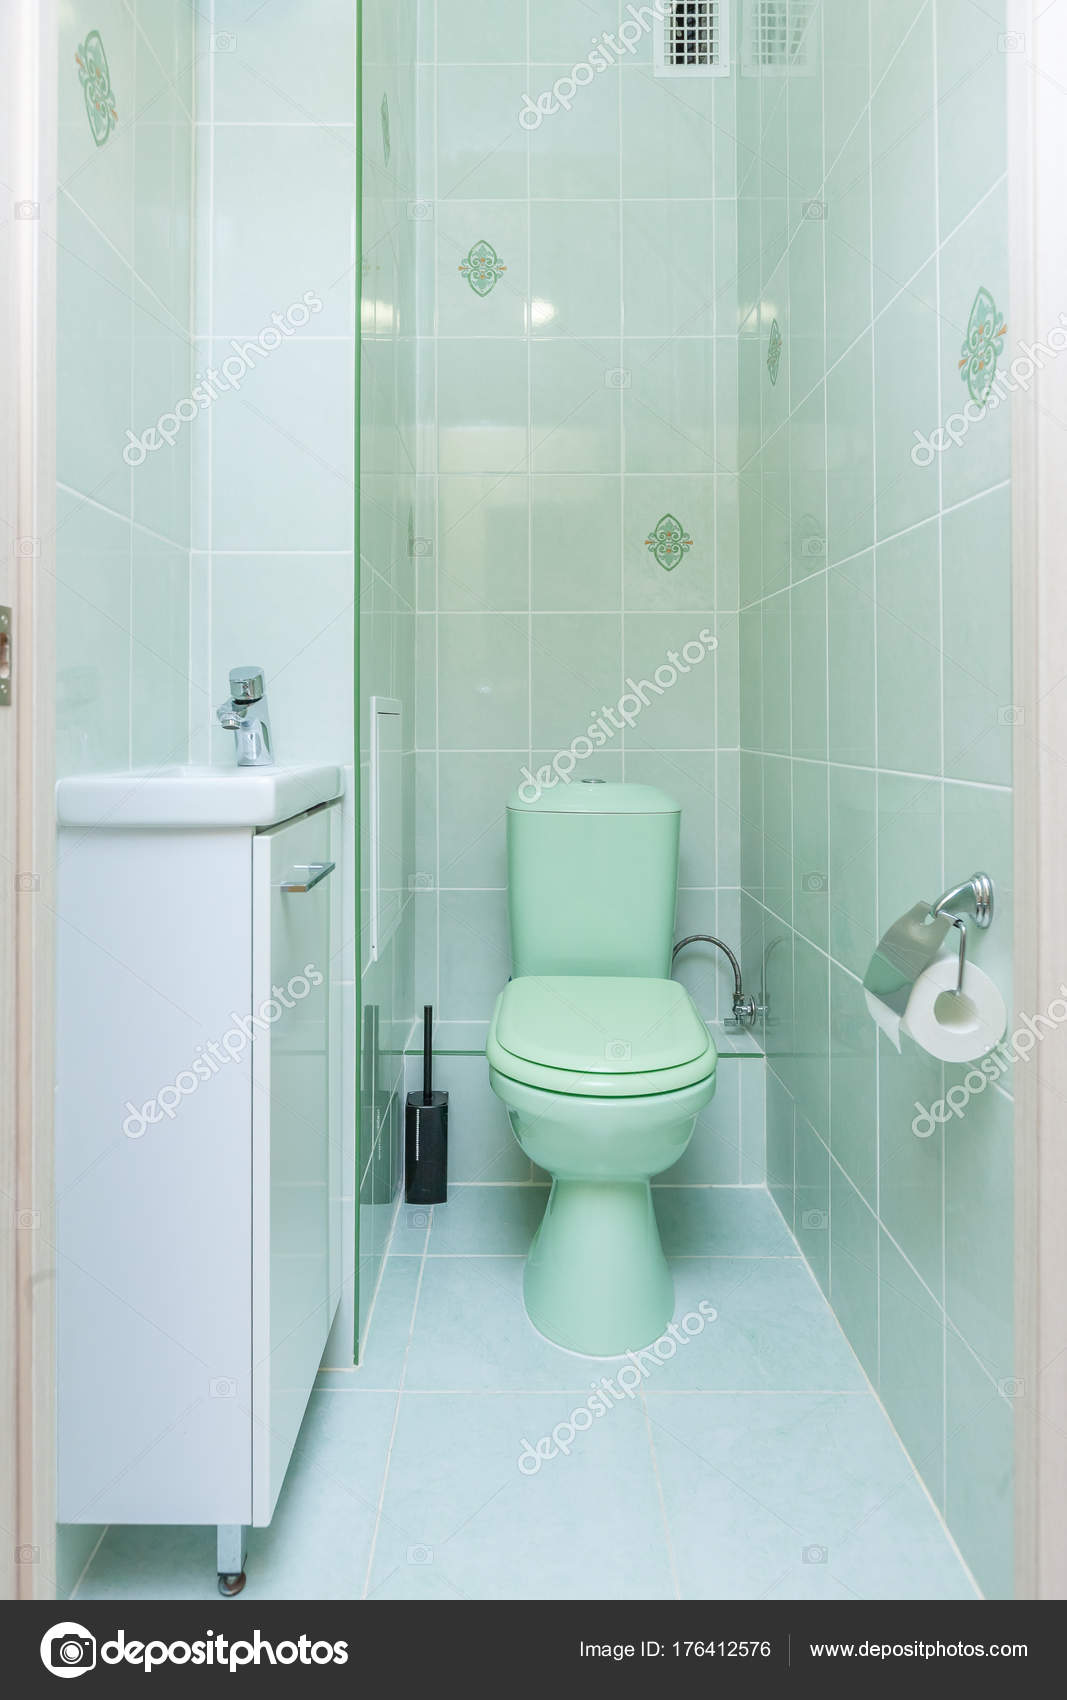 Tegel Wc Toilet Met Wc Stockfoto Olgasweet 176412576